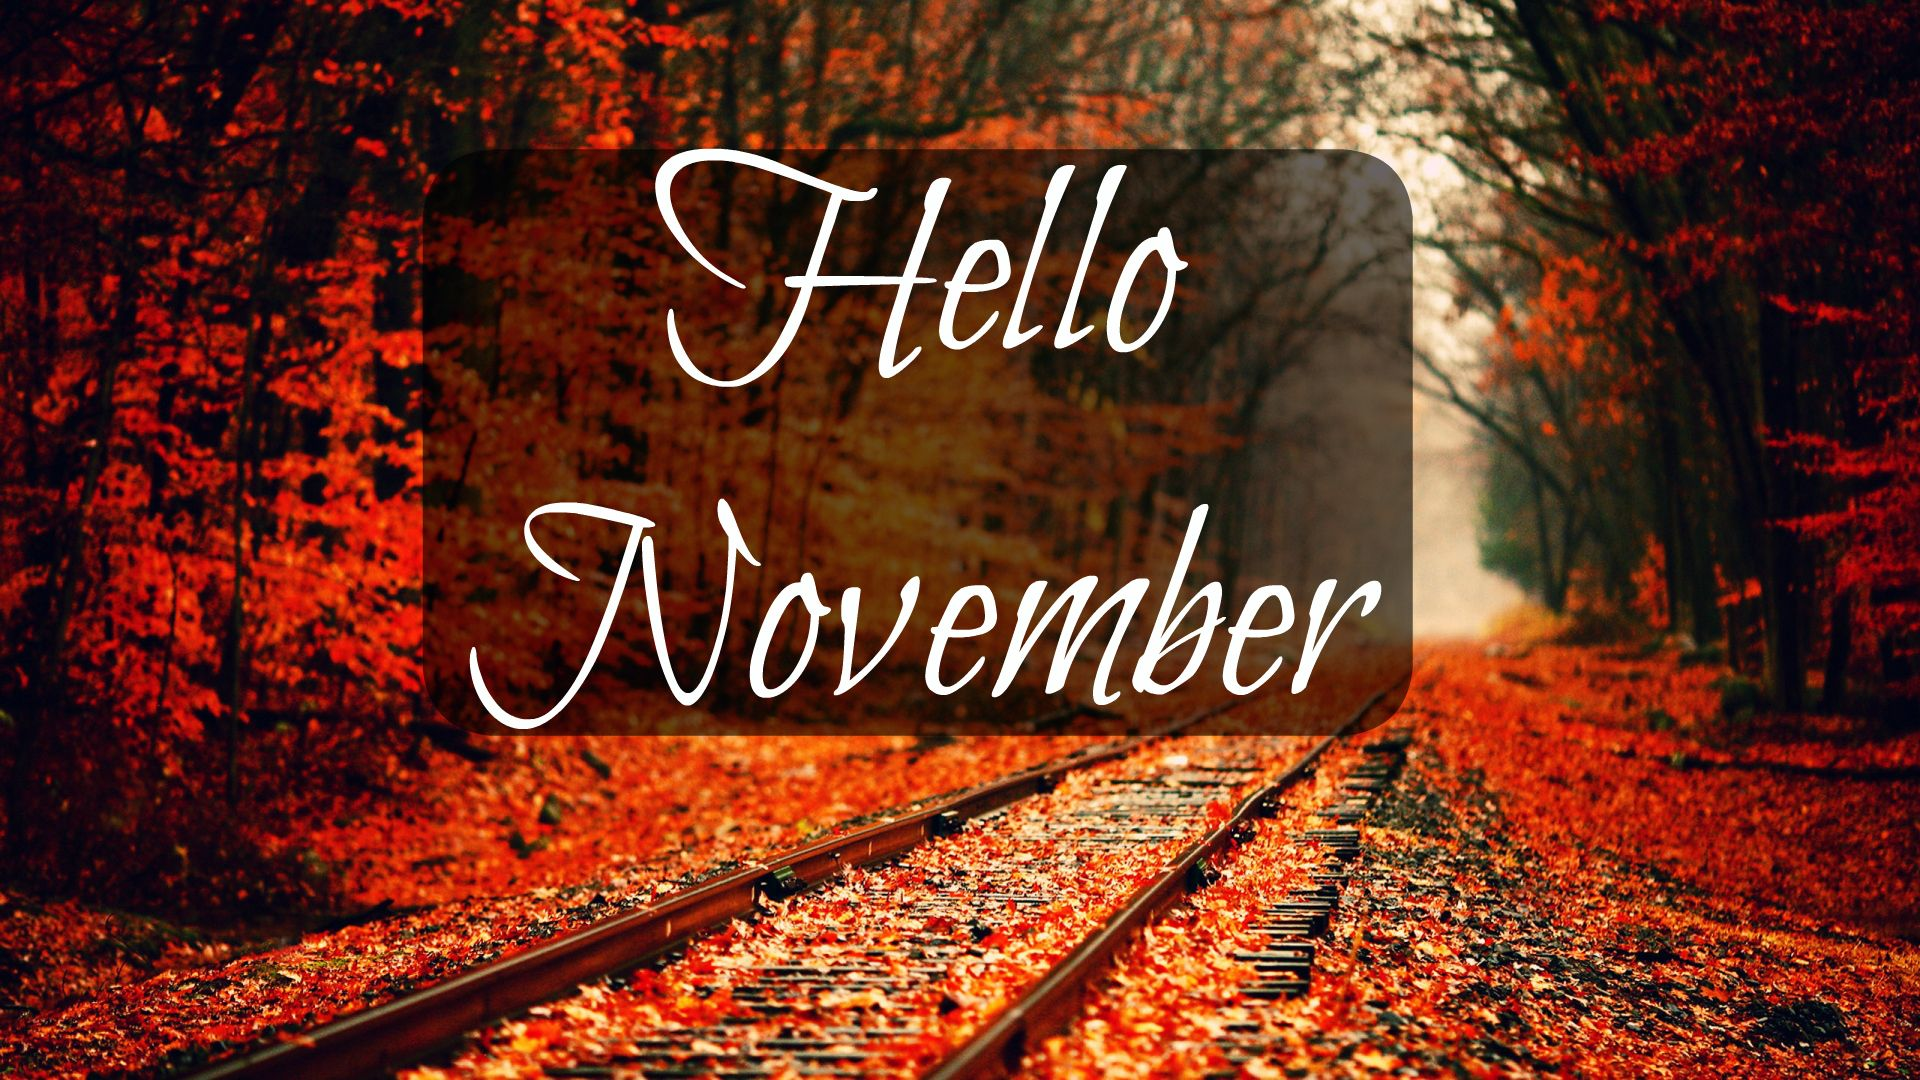 1920x1080 Hello November Wallpapers HD For iPhone